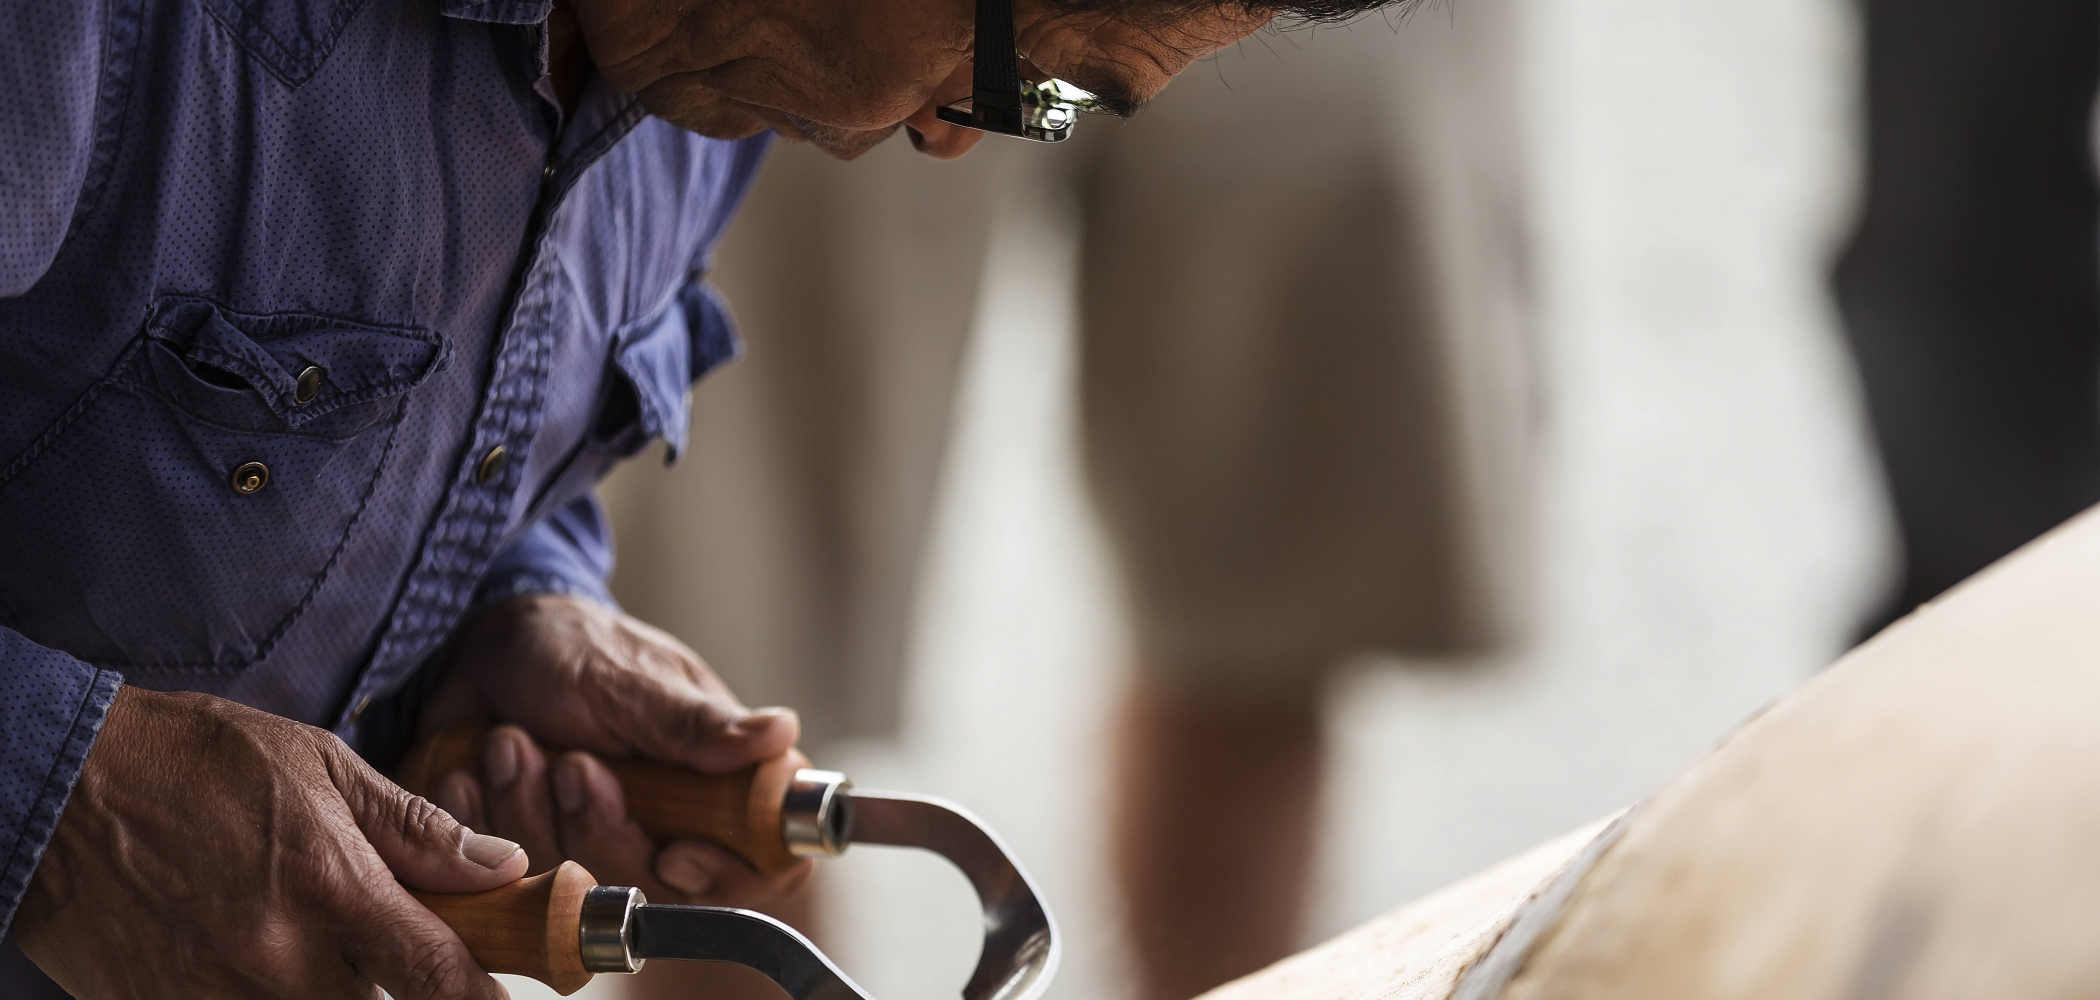 A first nations carver working on a dugout canoe checks his work while using an Inshave carving tool . Tofino, Vancouver Island, British Columbia, Canada.